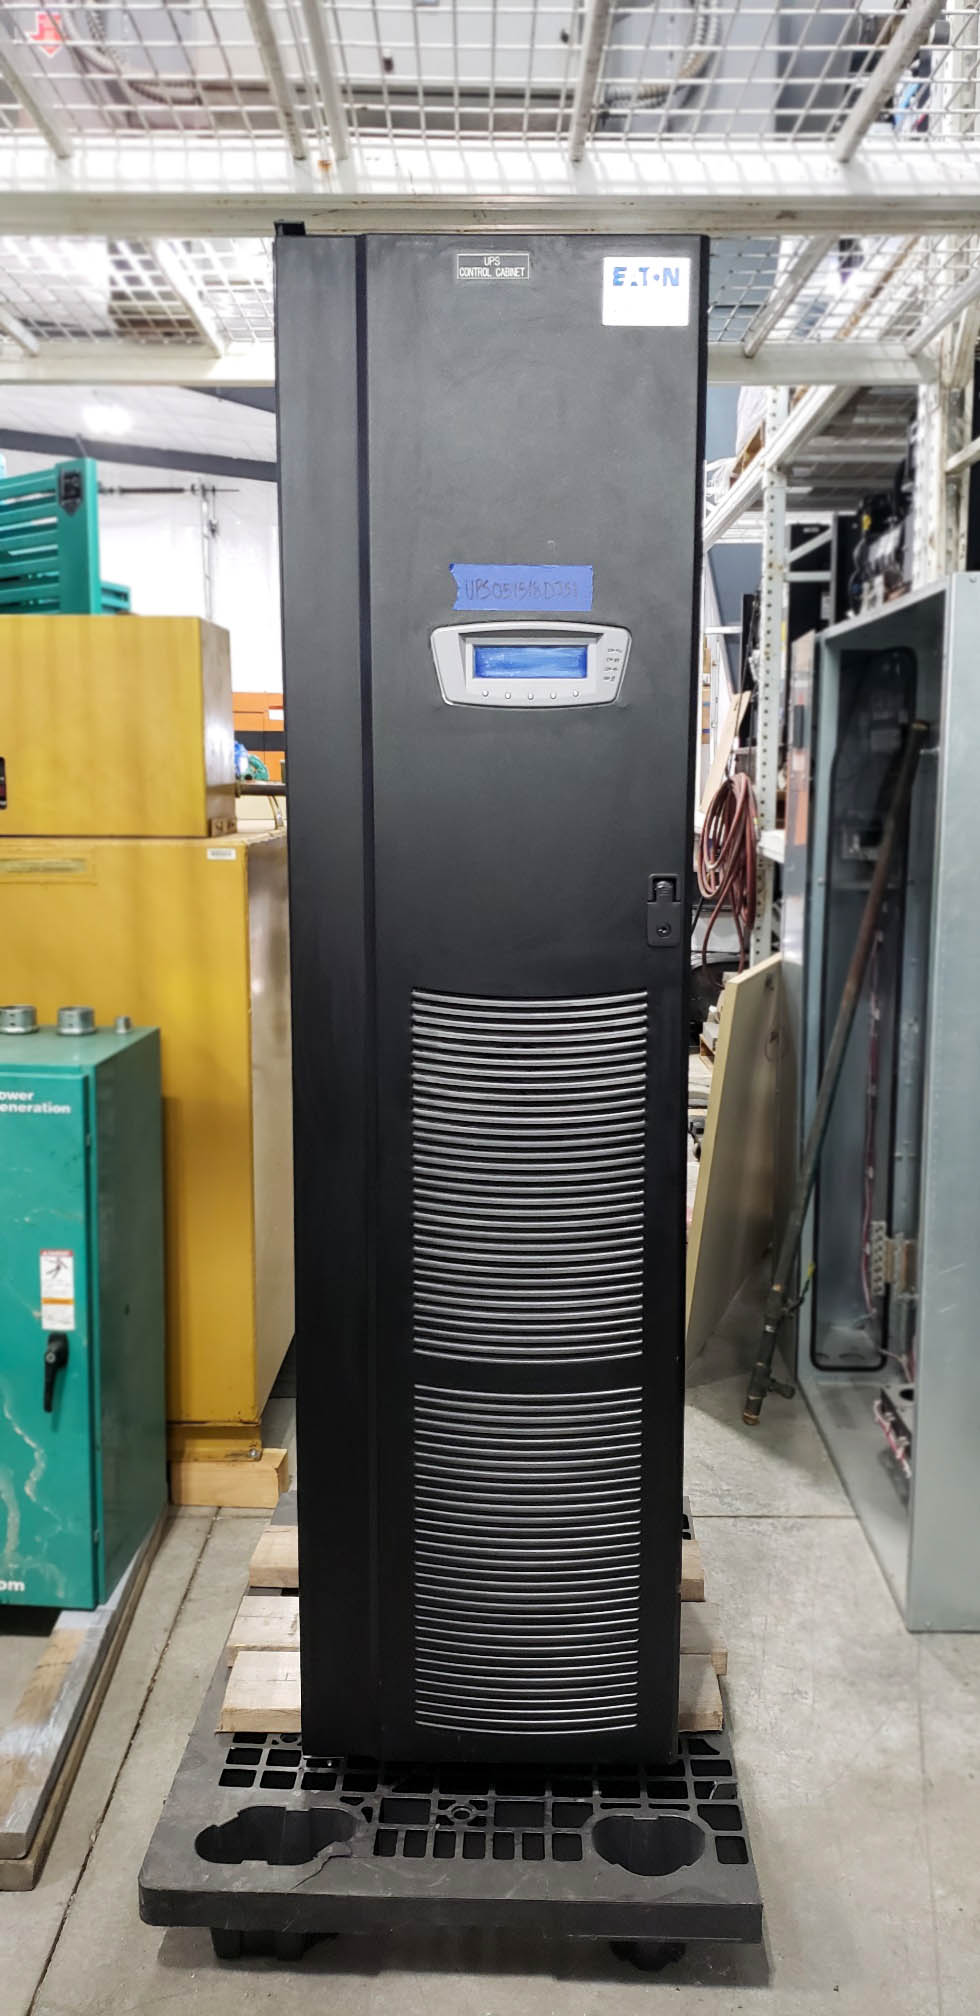 80 kVA Eaton 9390-80 UPS - Critical Power Products & Services